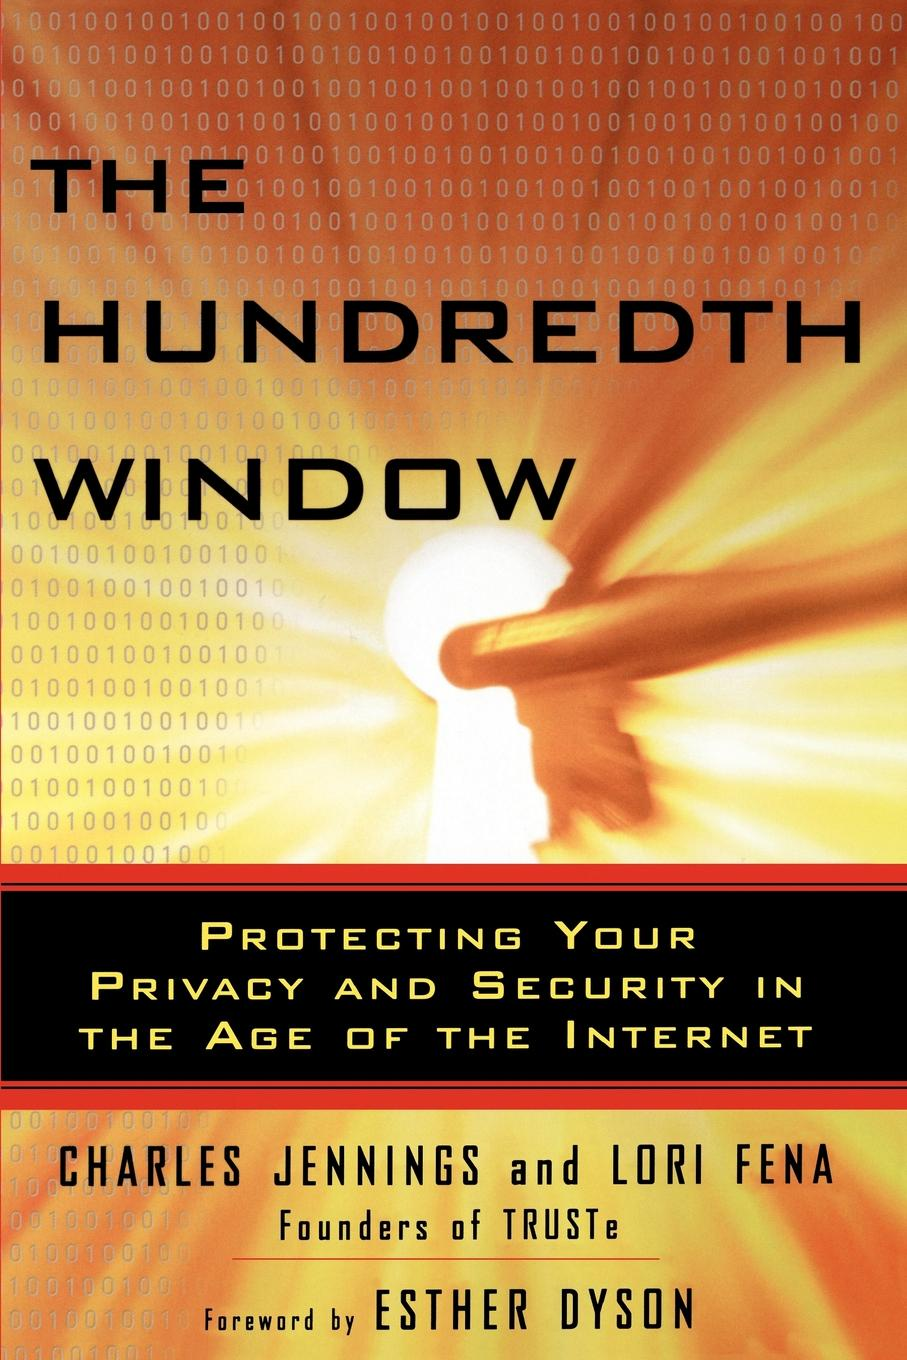 Charles Jennings, Elizabeth Dyson, Lori Fena The Hundredth Window. Protecting Your Privacy and Security in the Age of Internet